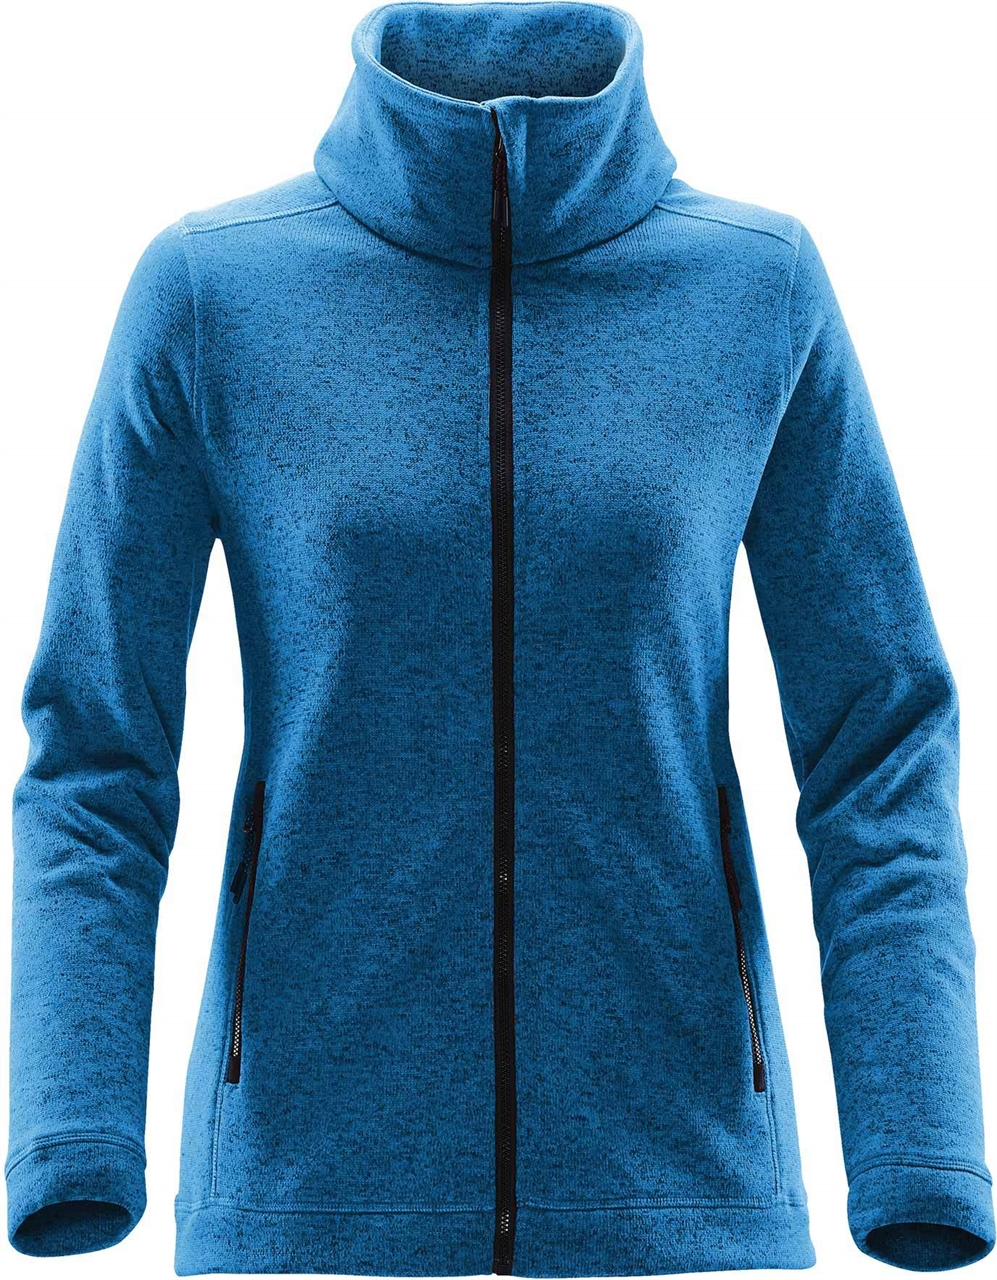 Picture of STORMTECH Tundra Sweater Fleece Ladies Jacket